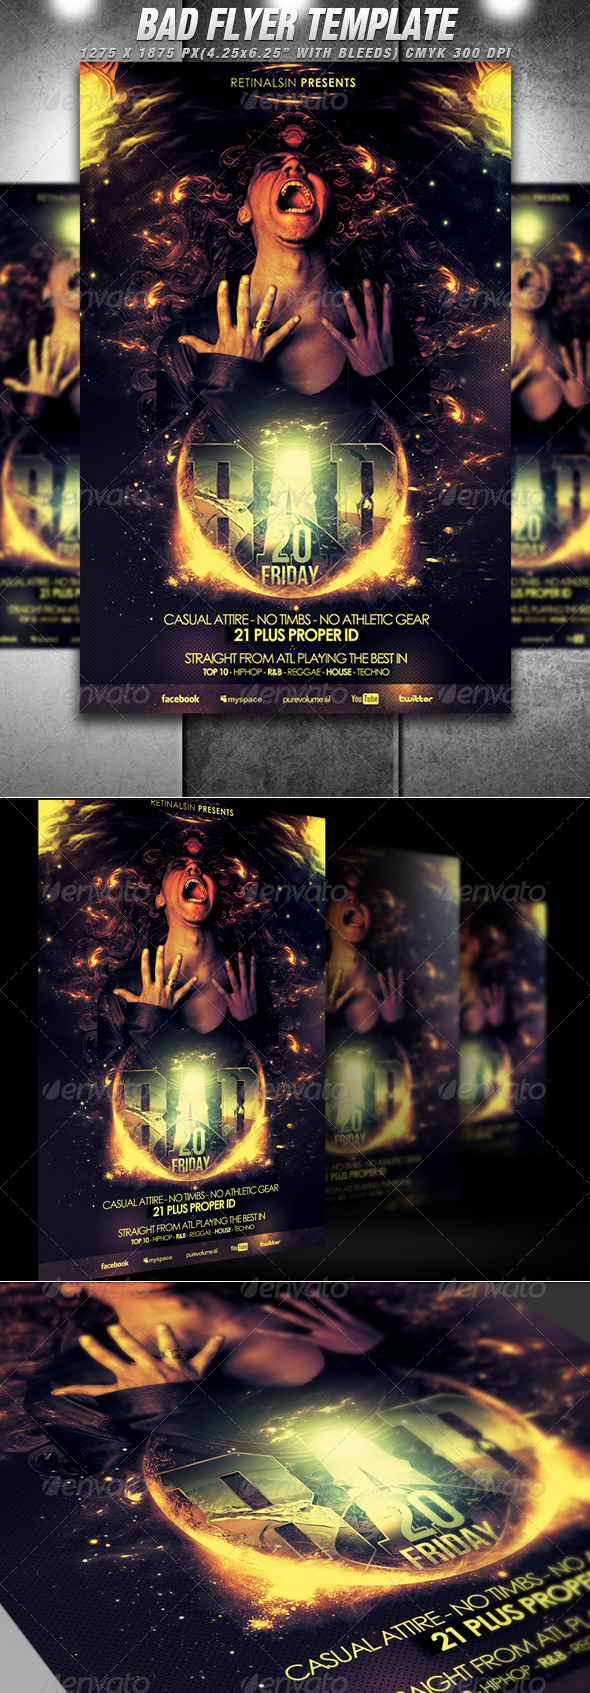 Bad Flyer Template - Flyers Print Templates